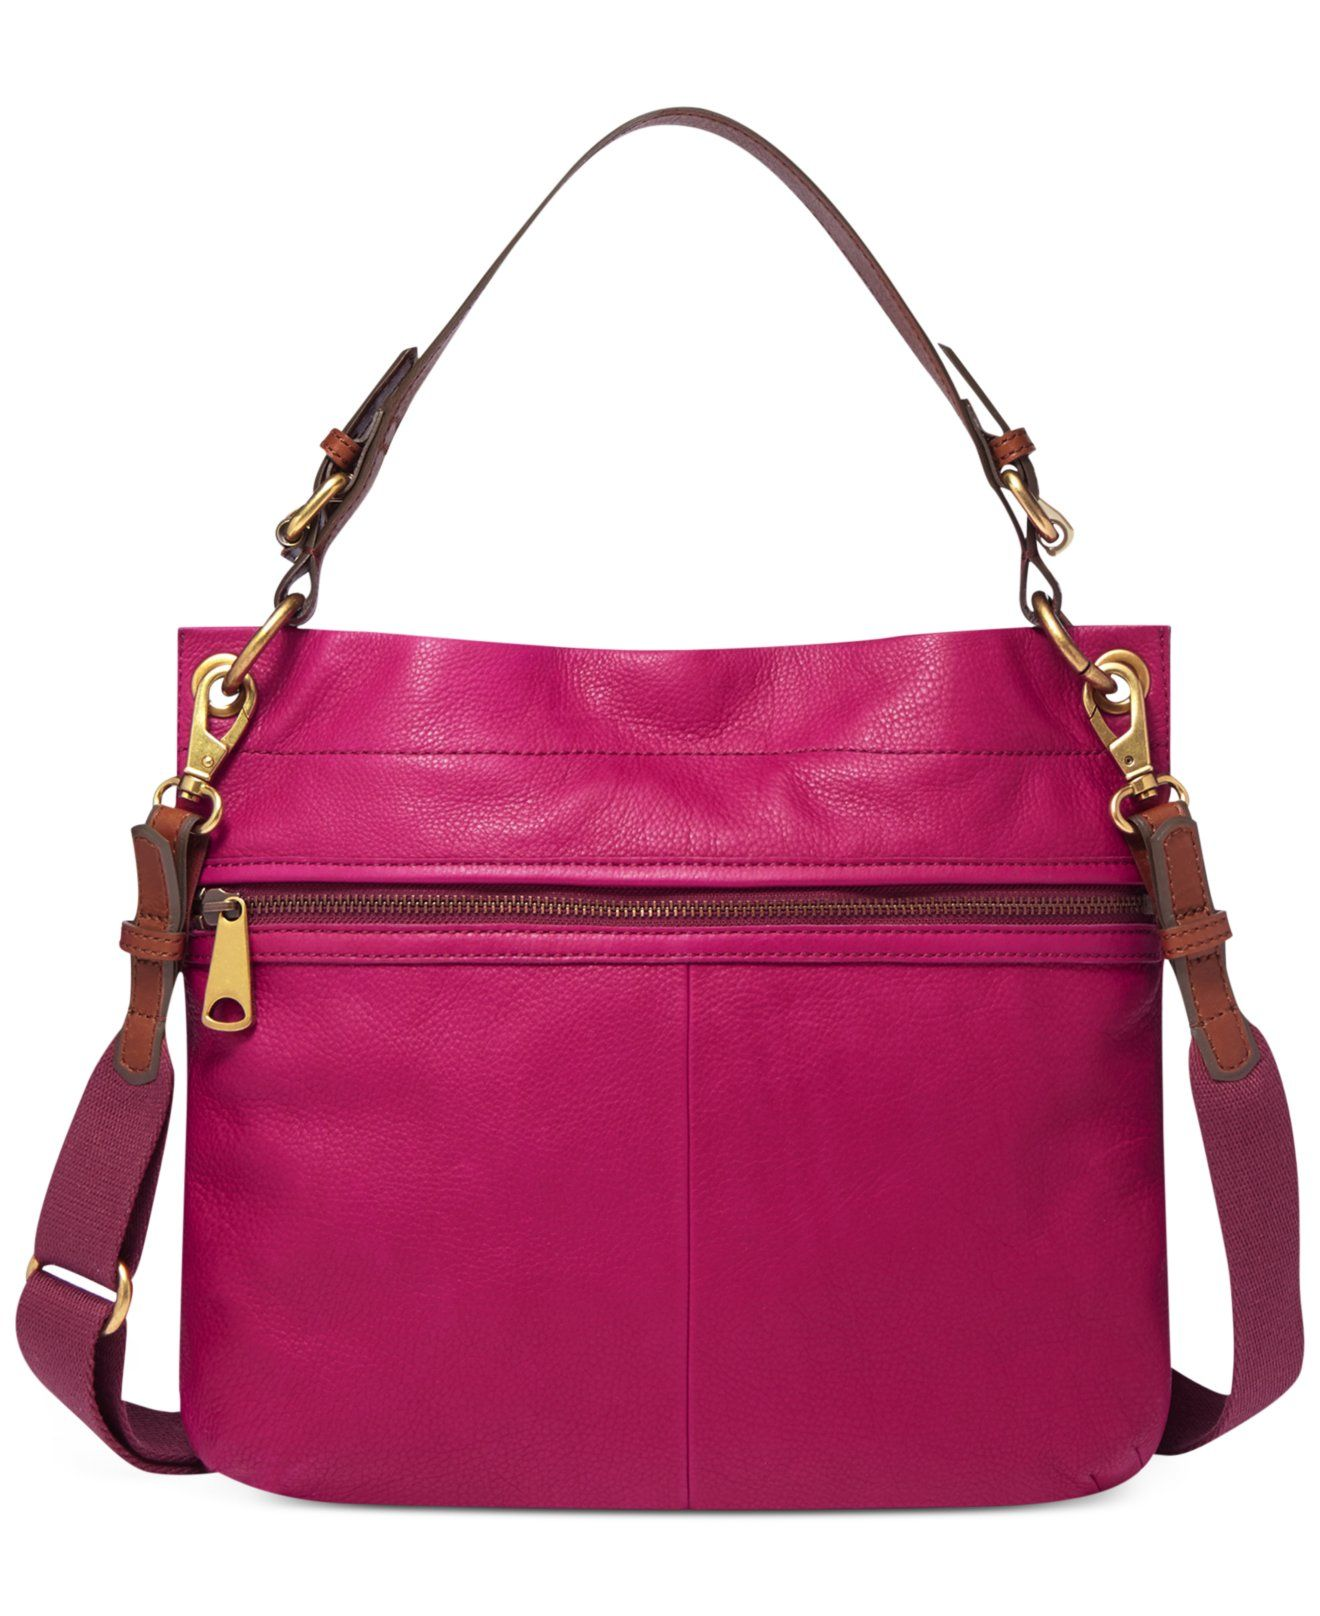 Fossil Explorer Leather Hobo - Sale & Clearance - Handbags ...